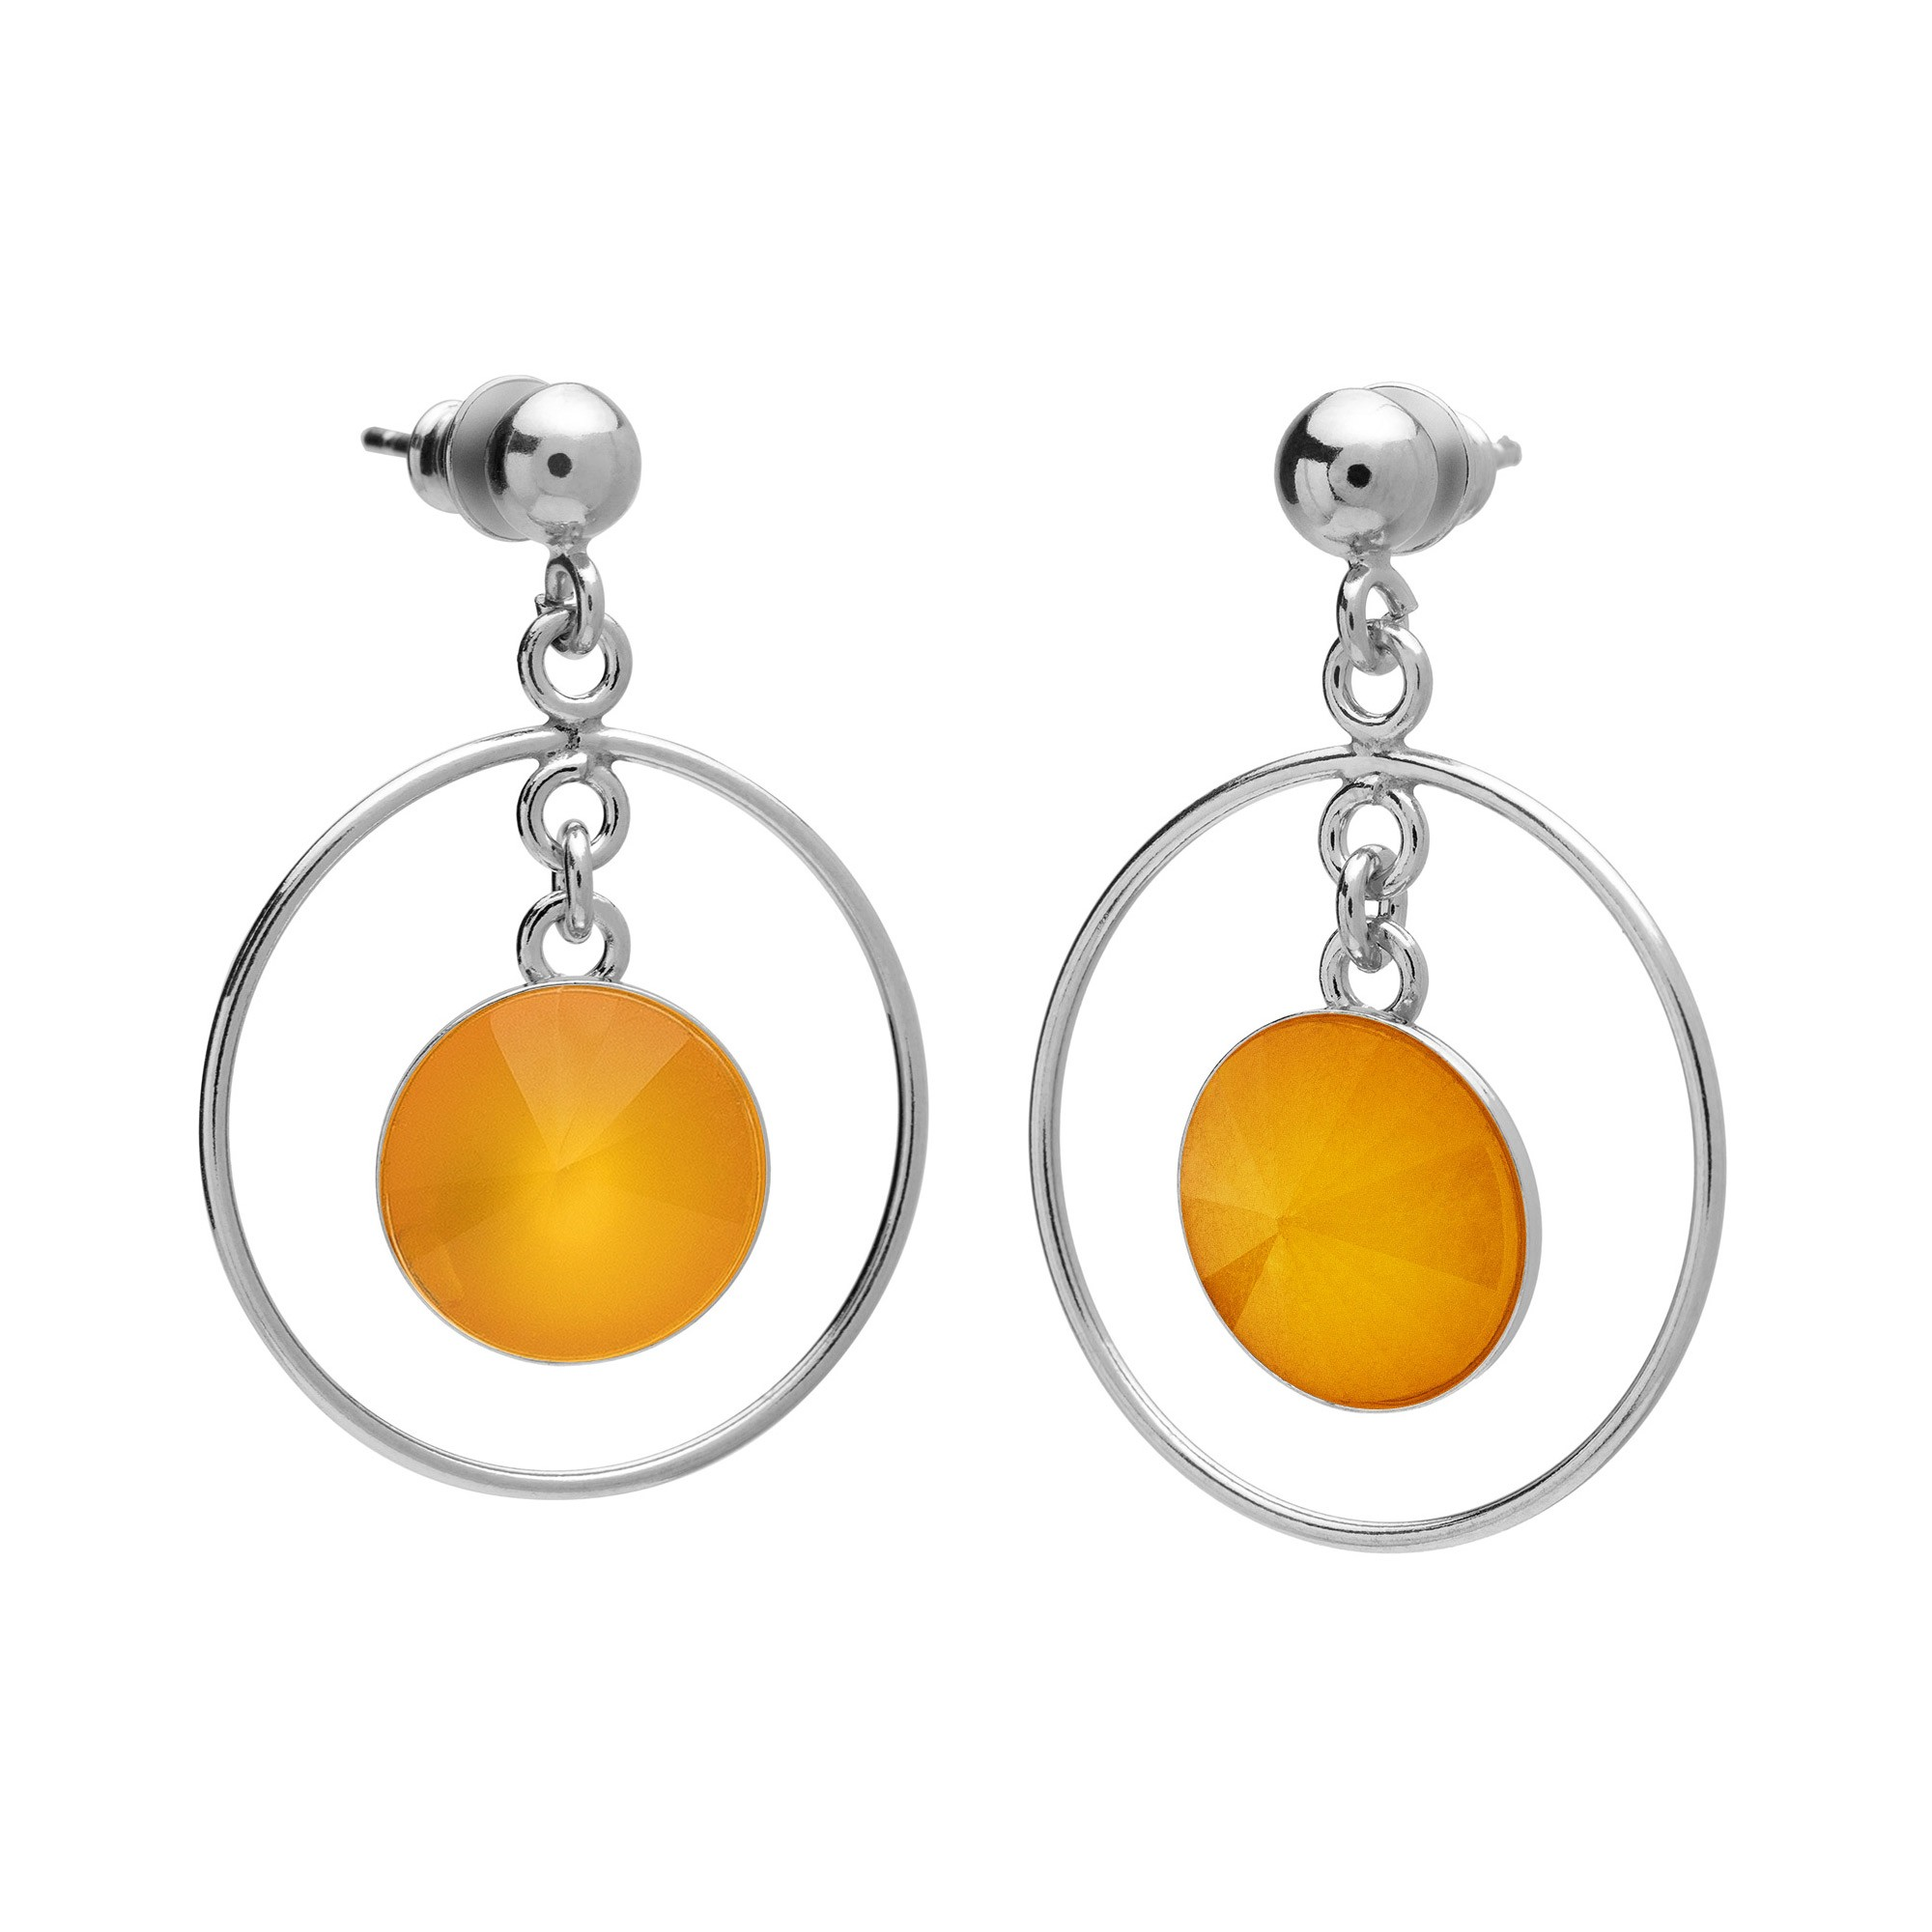 Round earrings with natural stone, 925